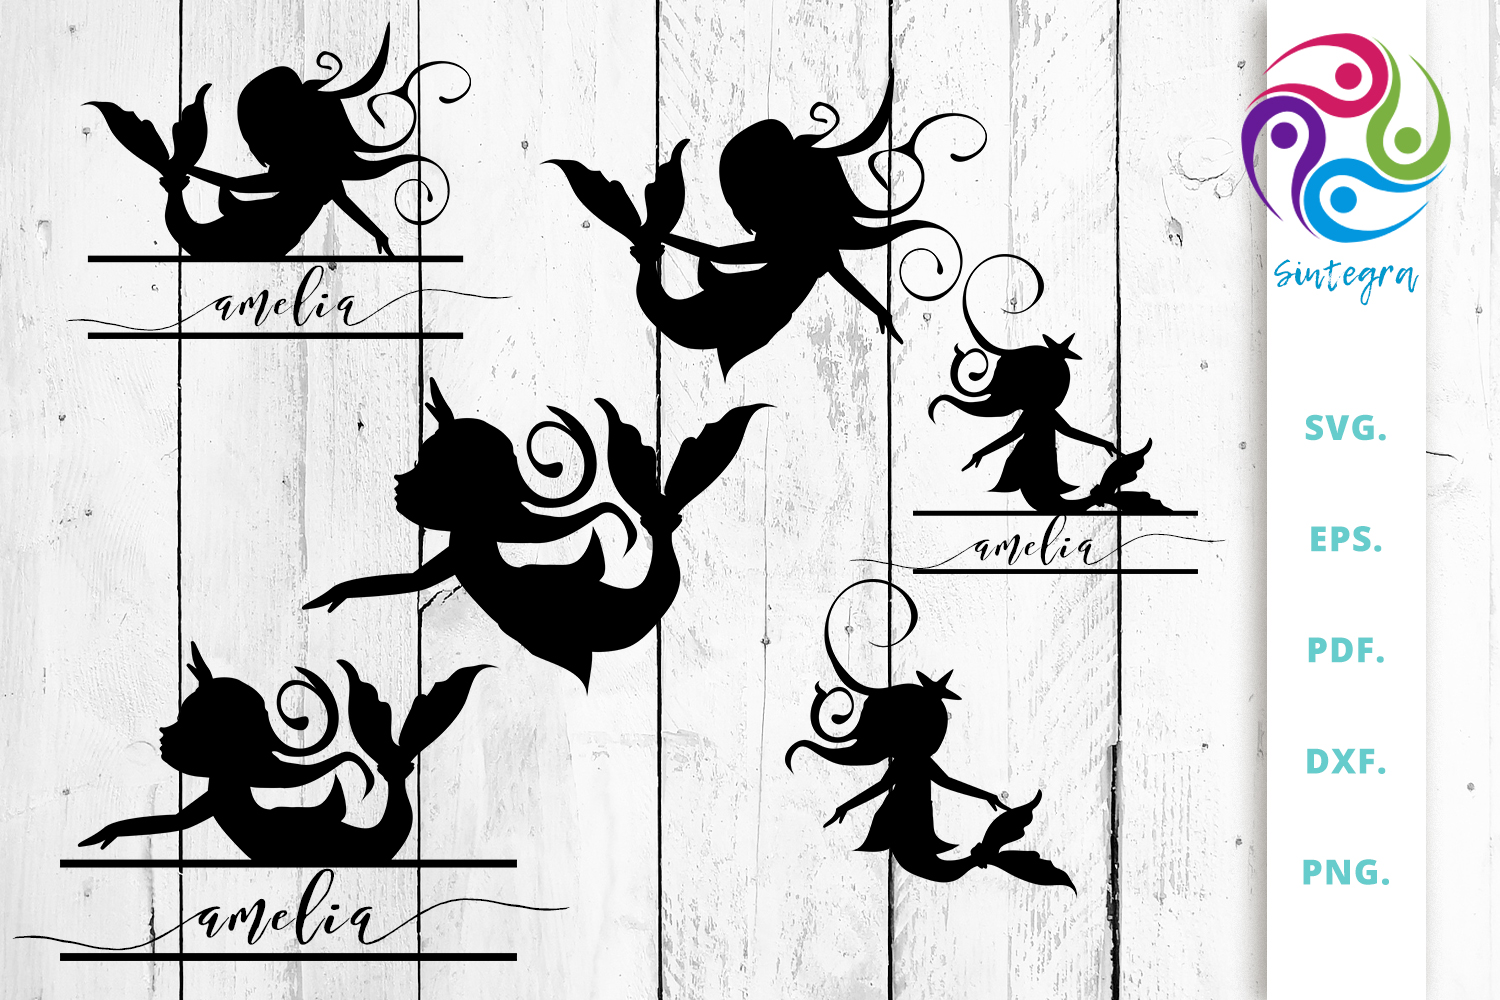 Download Free Mermaids Silhouettes And Split Cut Files Graphic By Sintegra for Cricut Explore, Silhouette and other cutting machines.